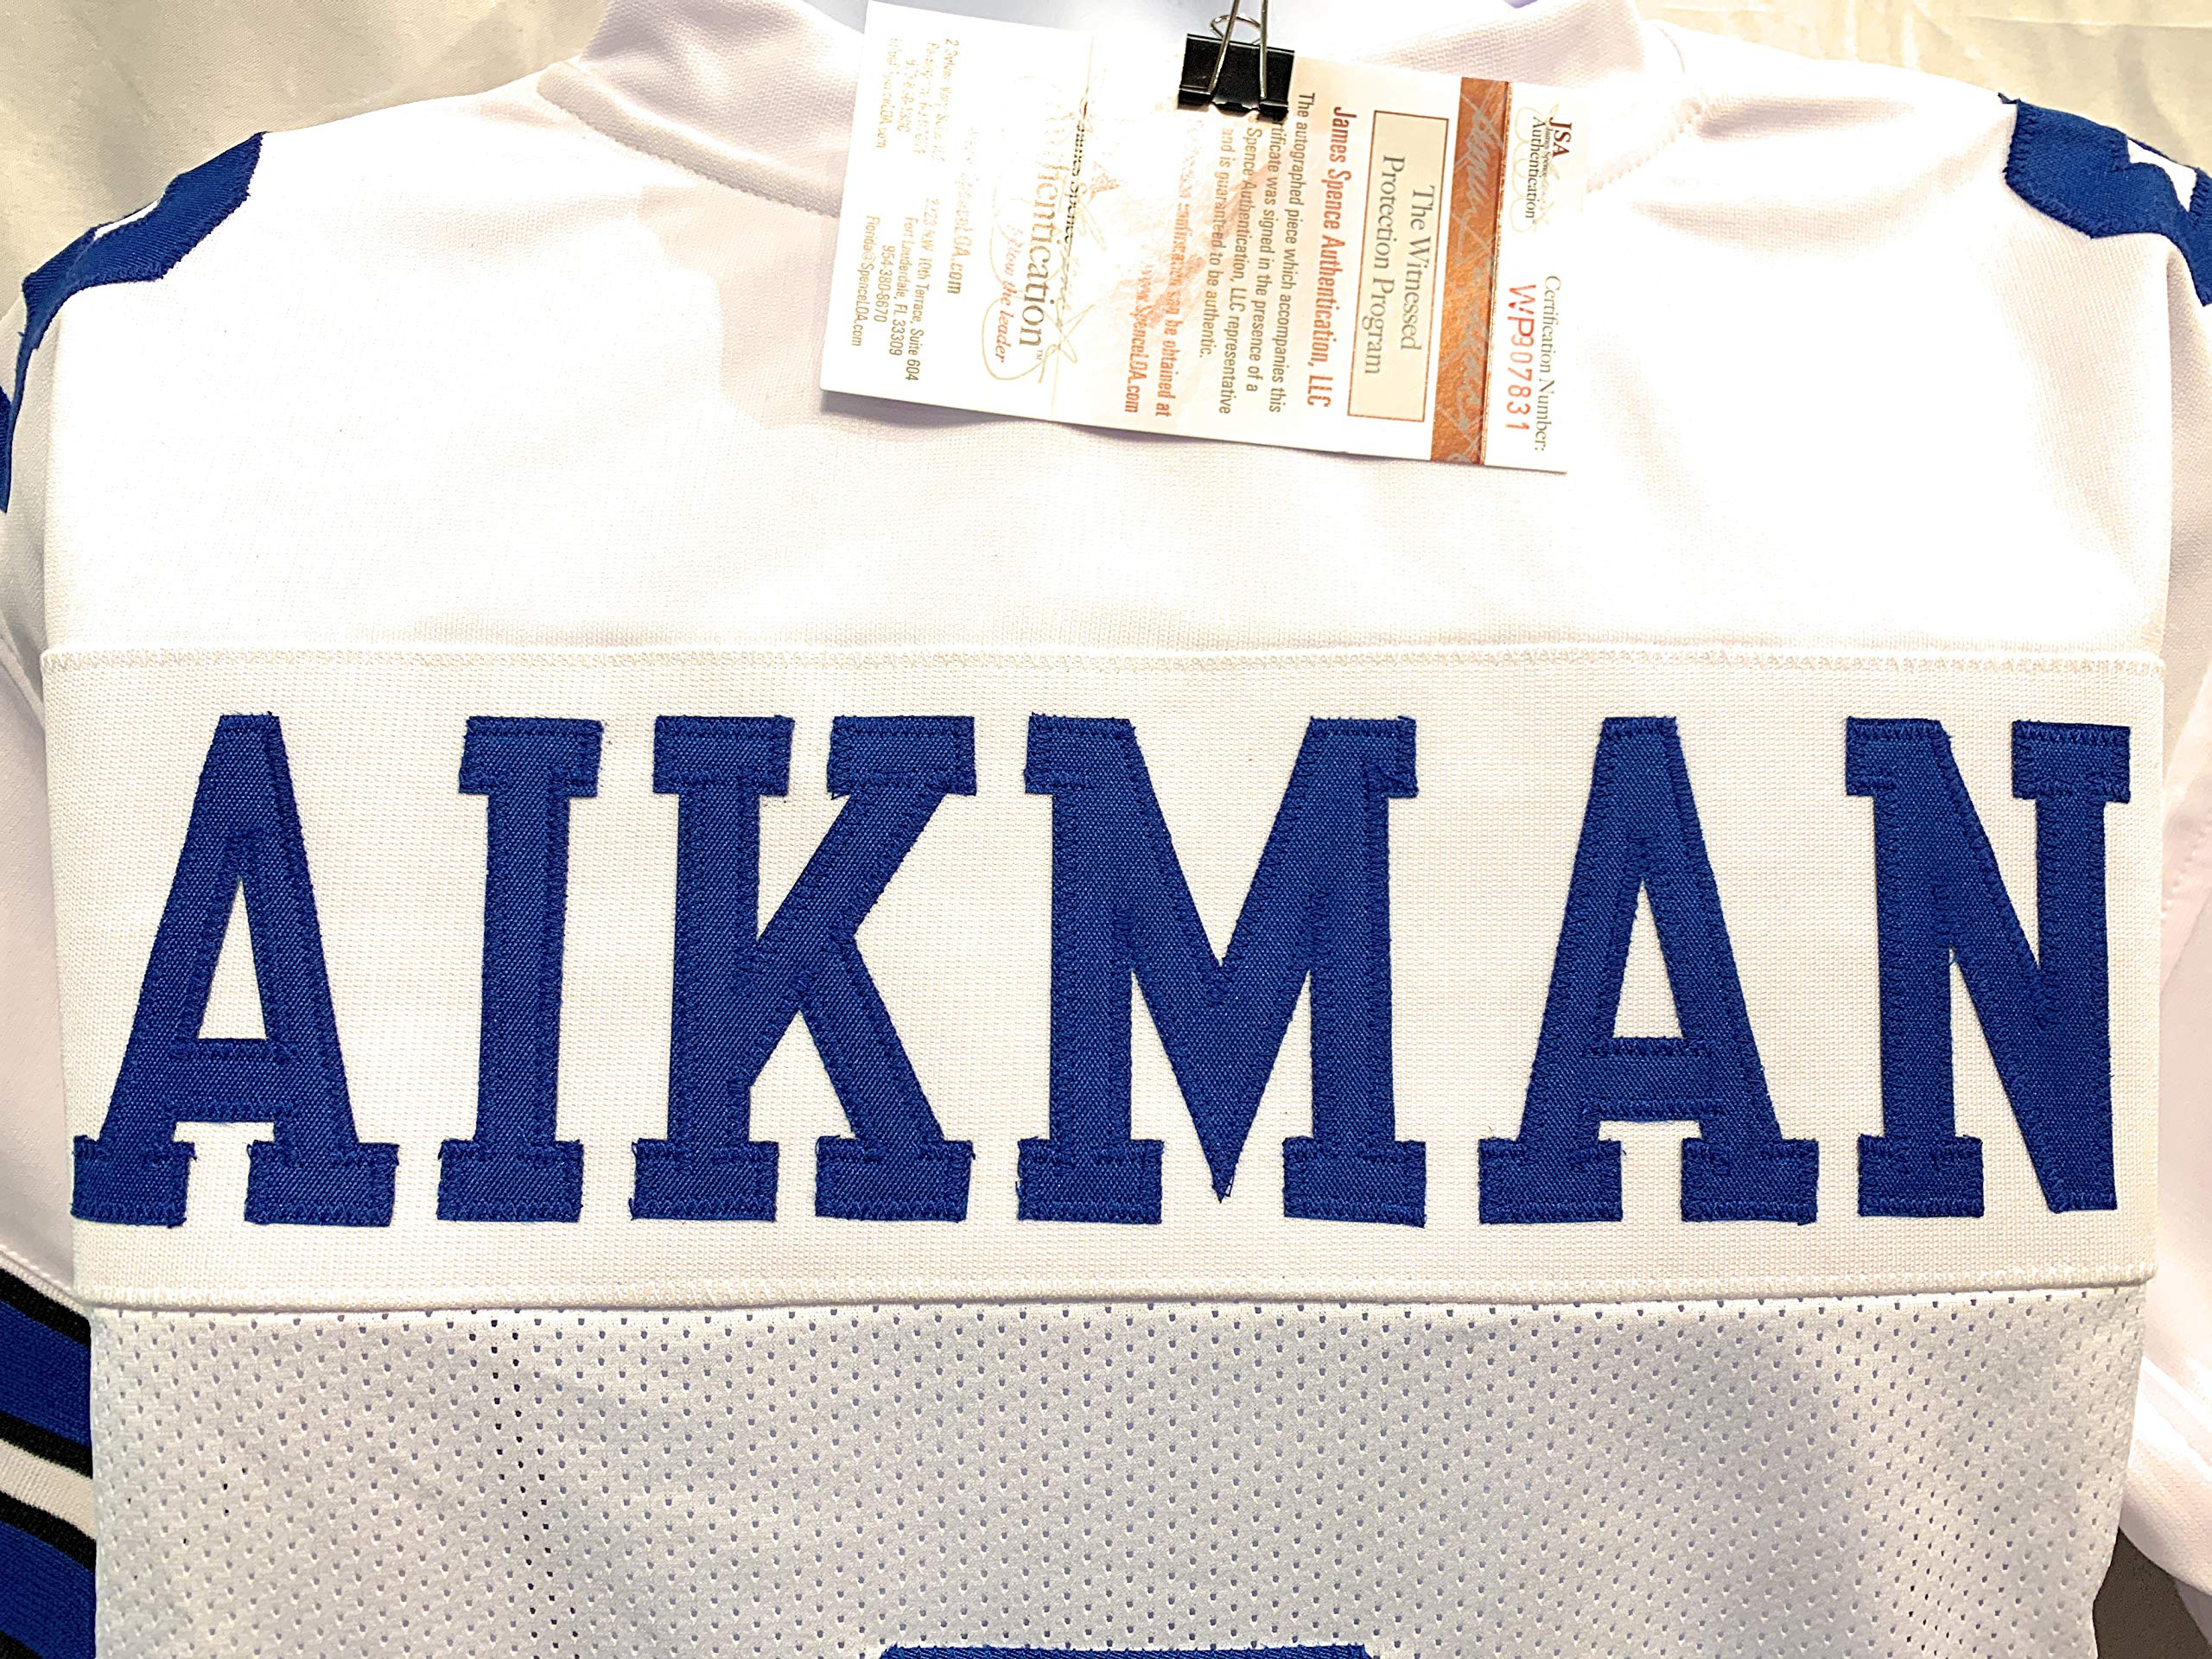 Troy Aikman Dallas Cowboys Signed Autograph White Custom Jersey Aikman GTSM Hologram Certified JSA Witnessed Certified